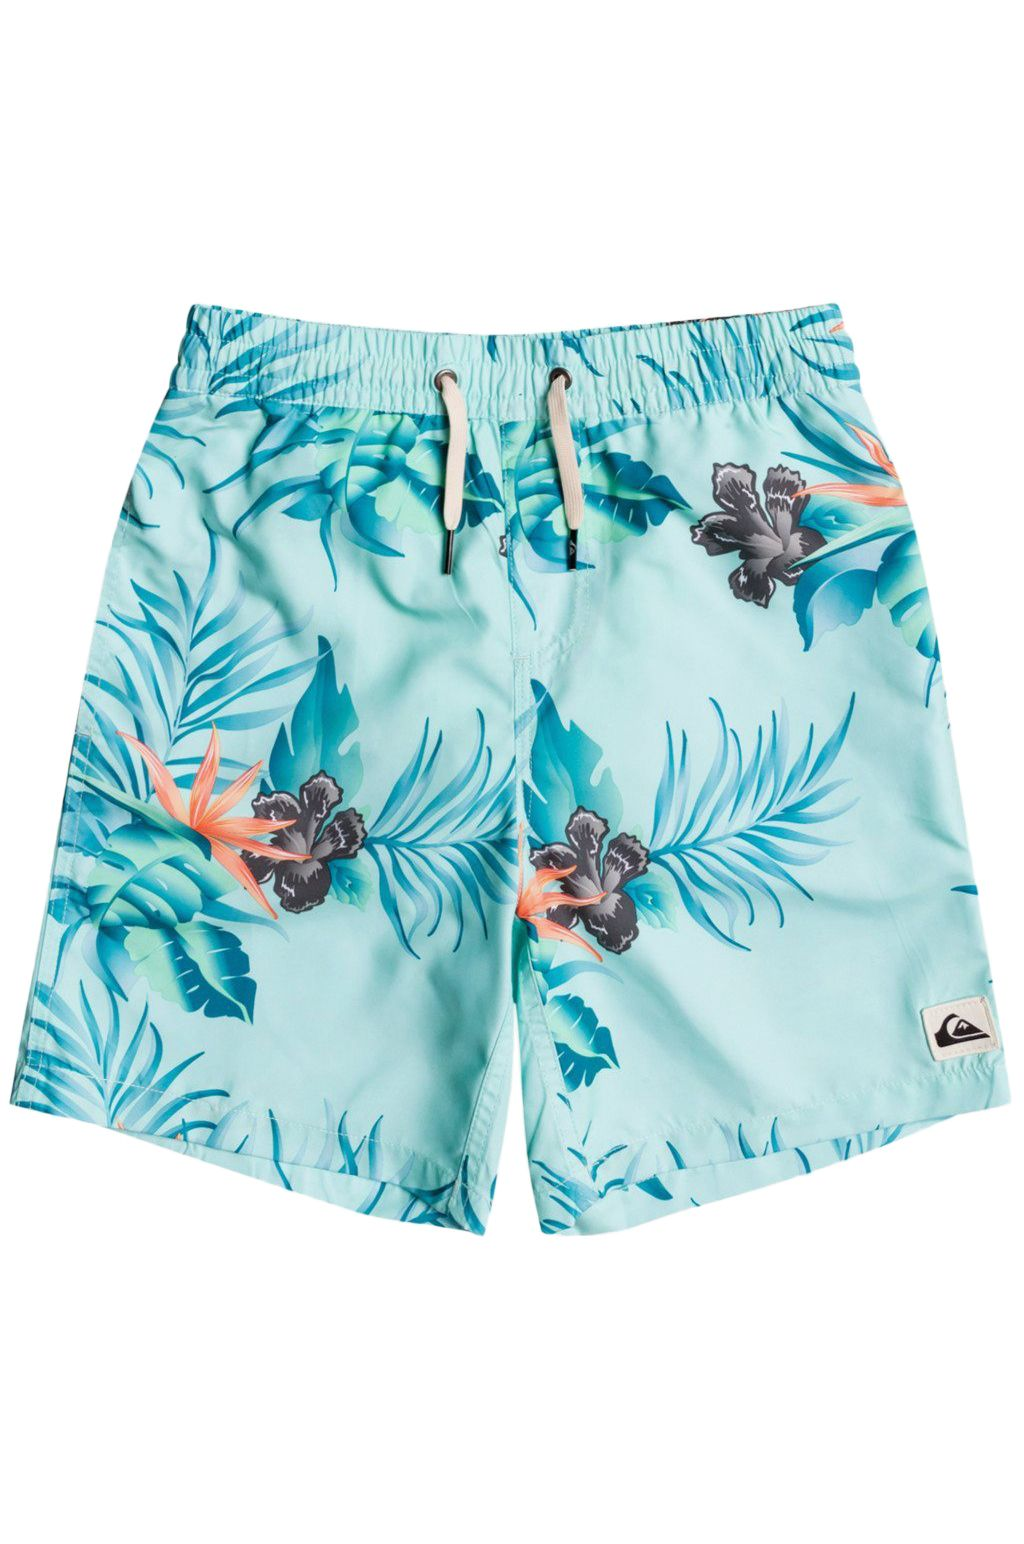 Quiksilver Boardshort Volleys PARADISE EXPRESS 15 Cabbage